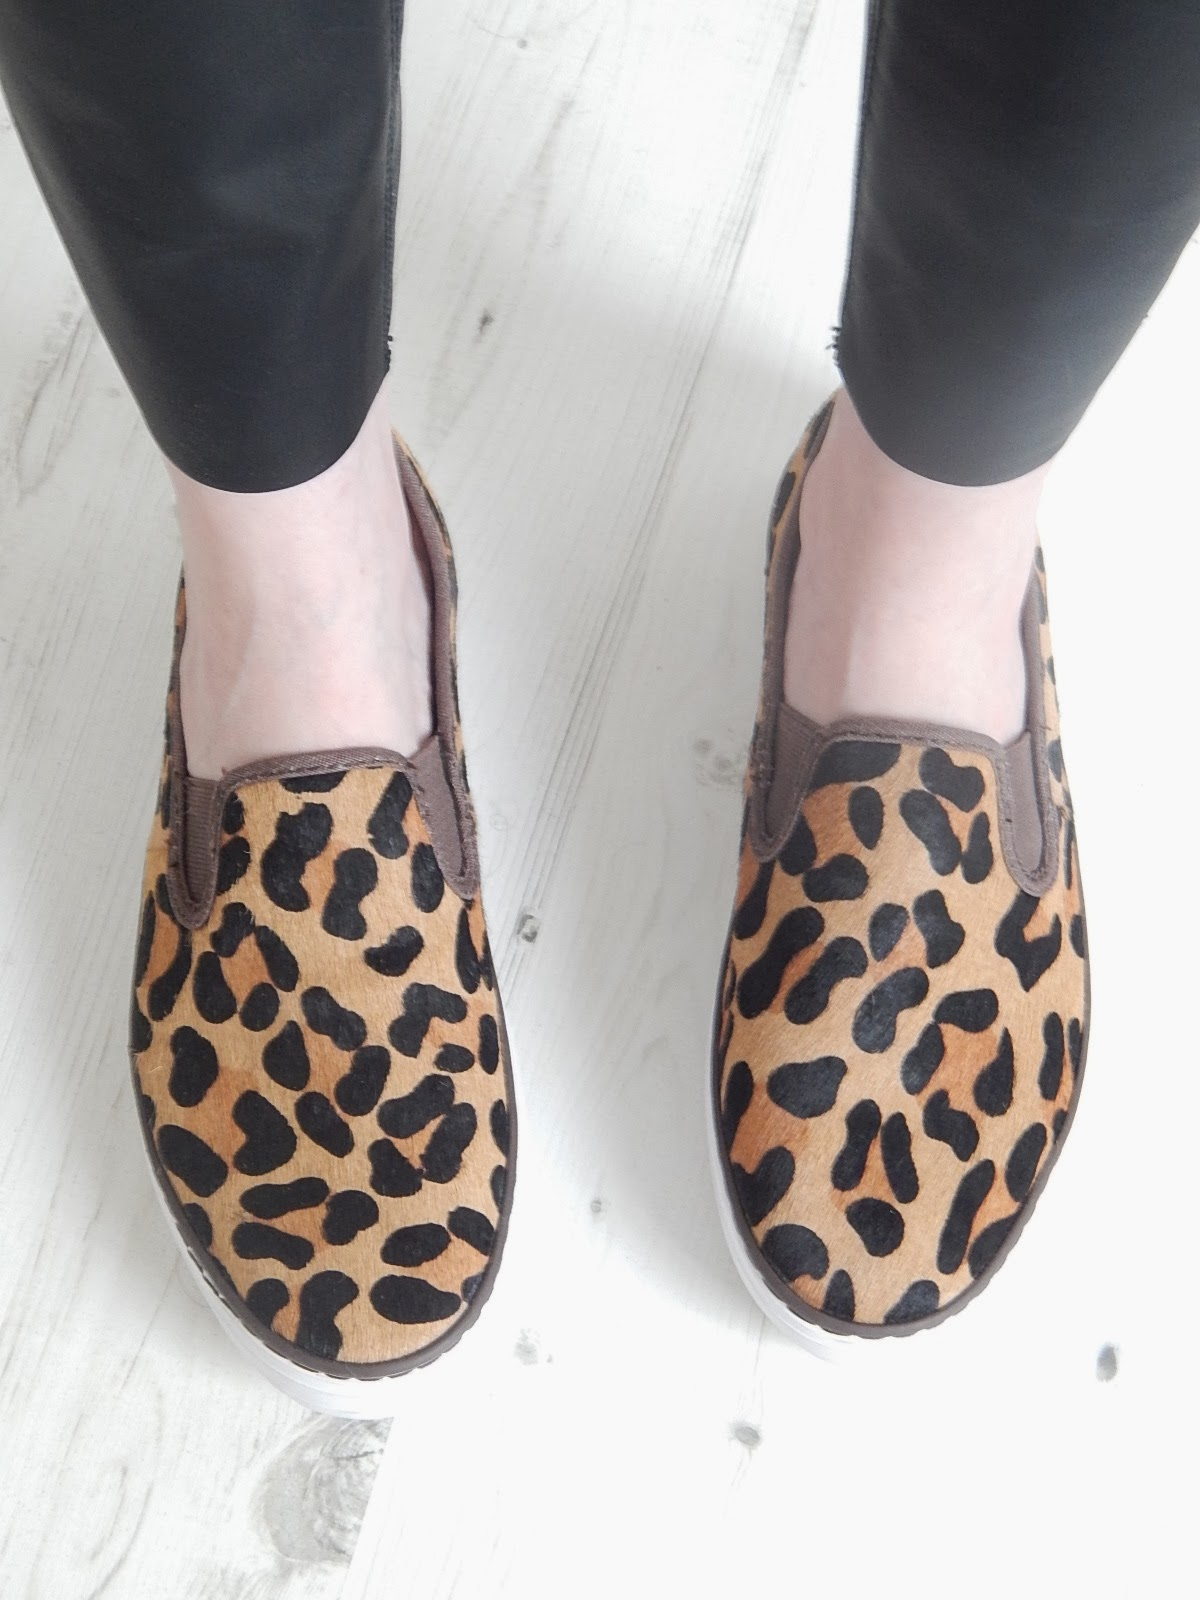 gap leopard print ponyskin slip on shoes